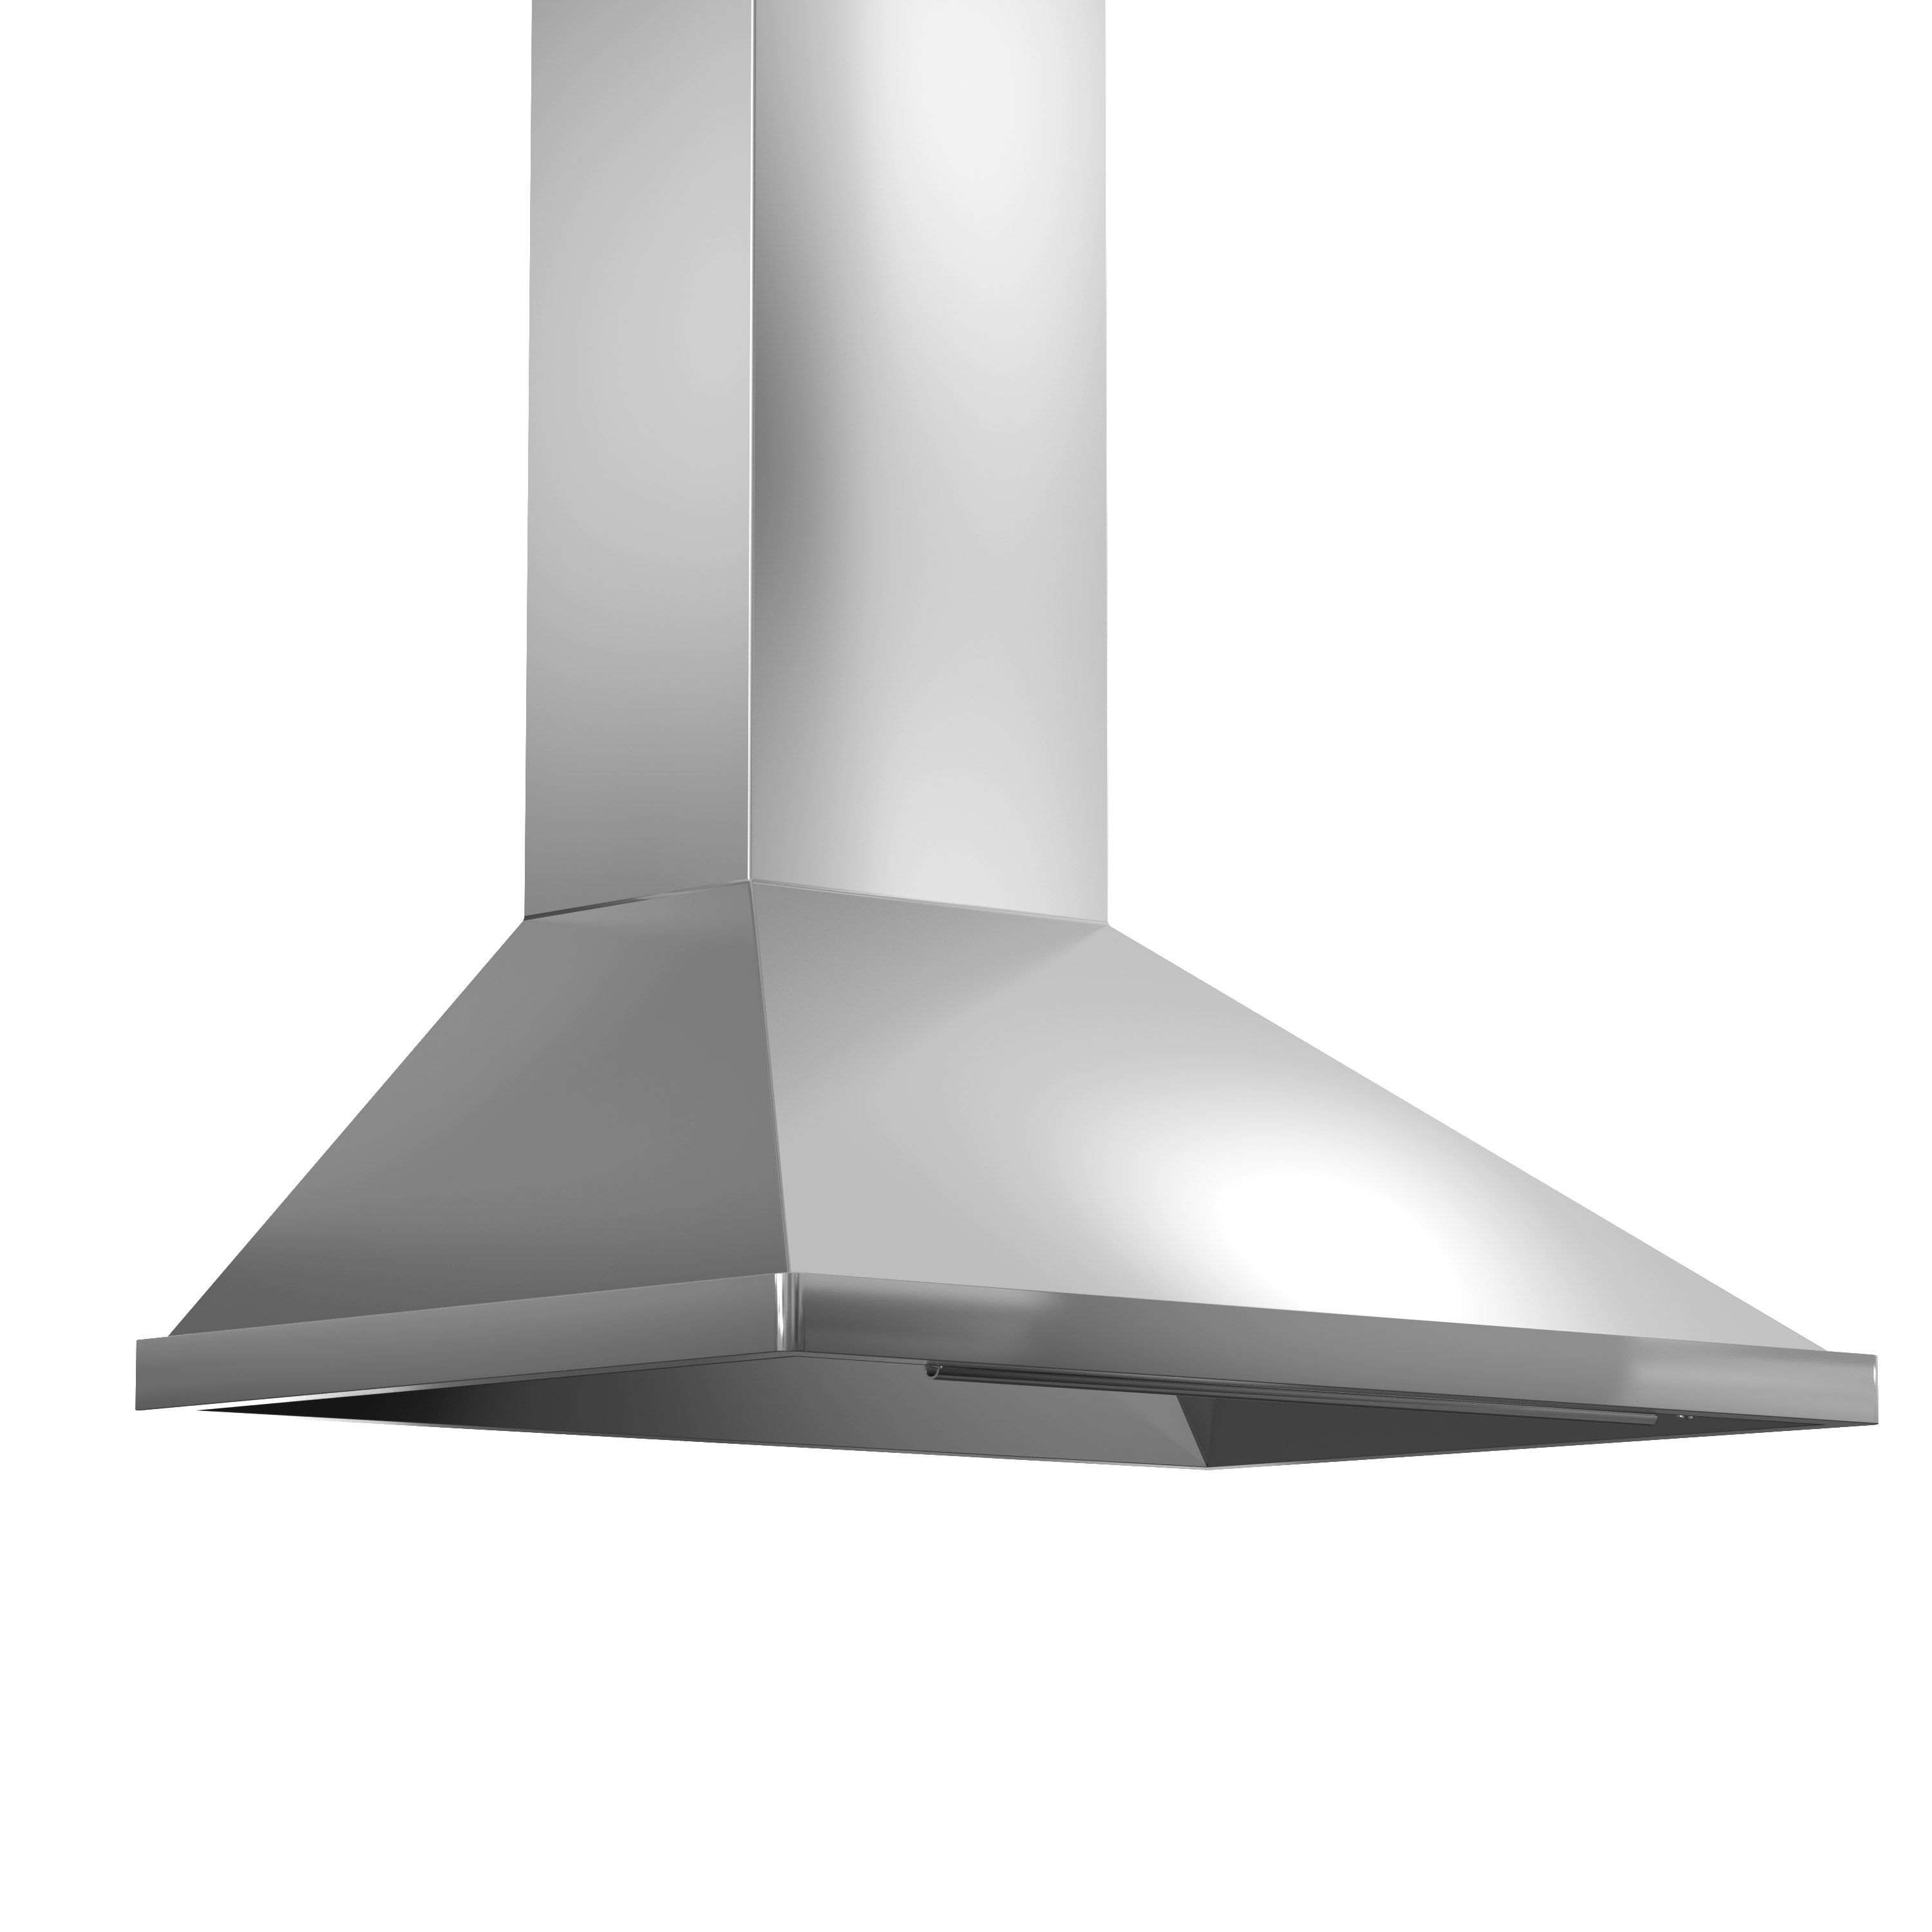 Zline 36 In Professional Wall Mount Range Hood In Stainless Steel 696 36 Wall Mount Range Hood Stainless Steel Range Hood Stainless Steel Hood